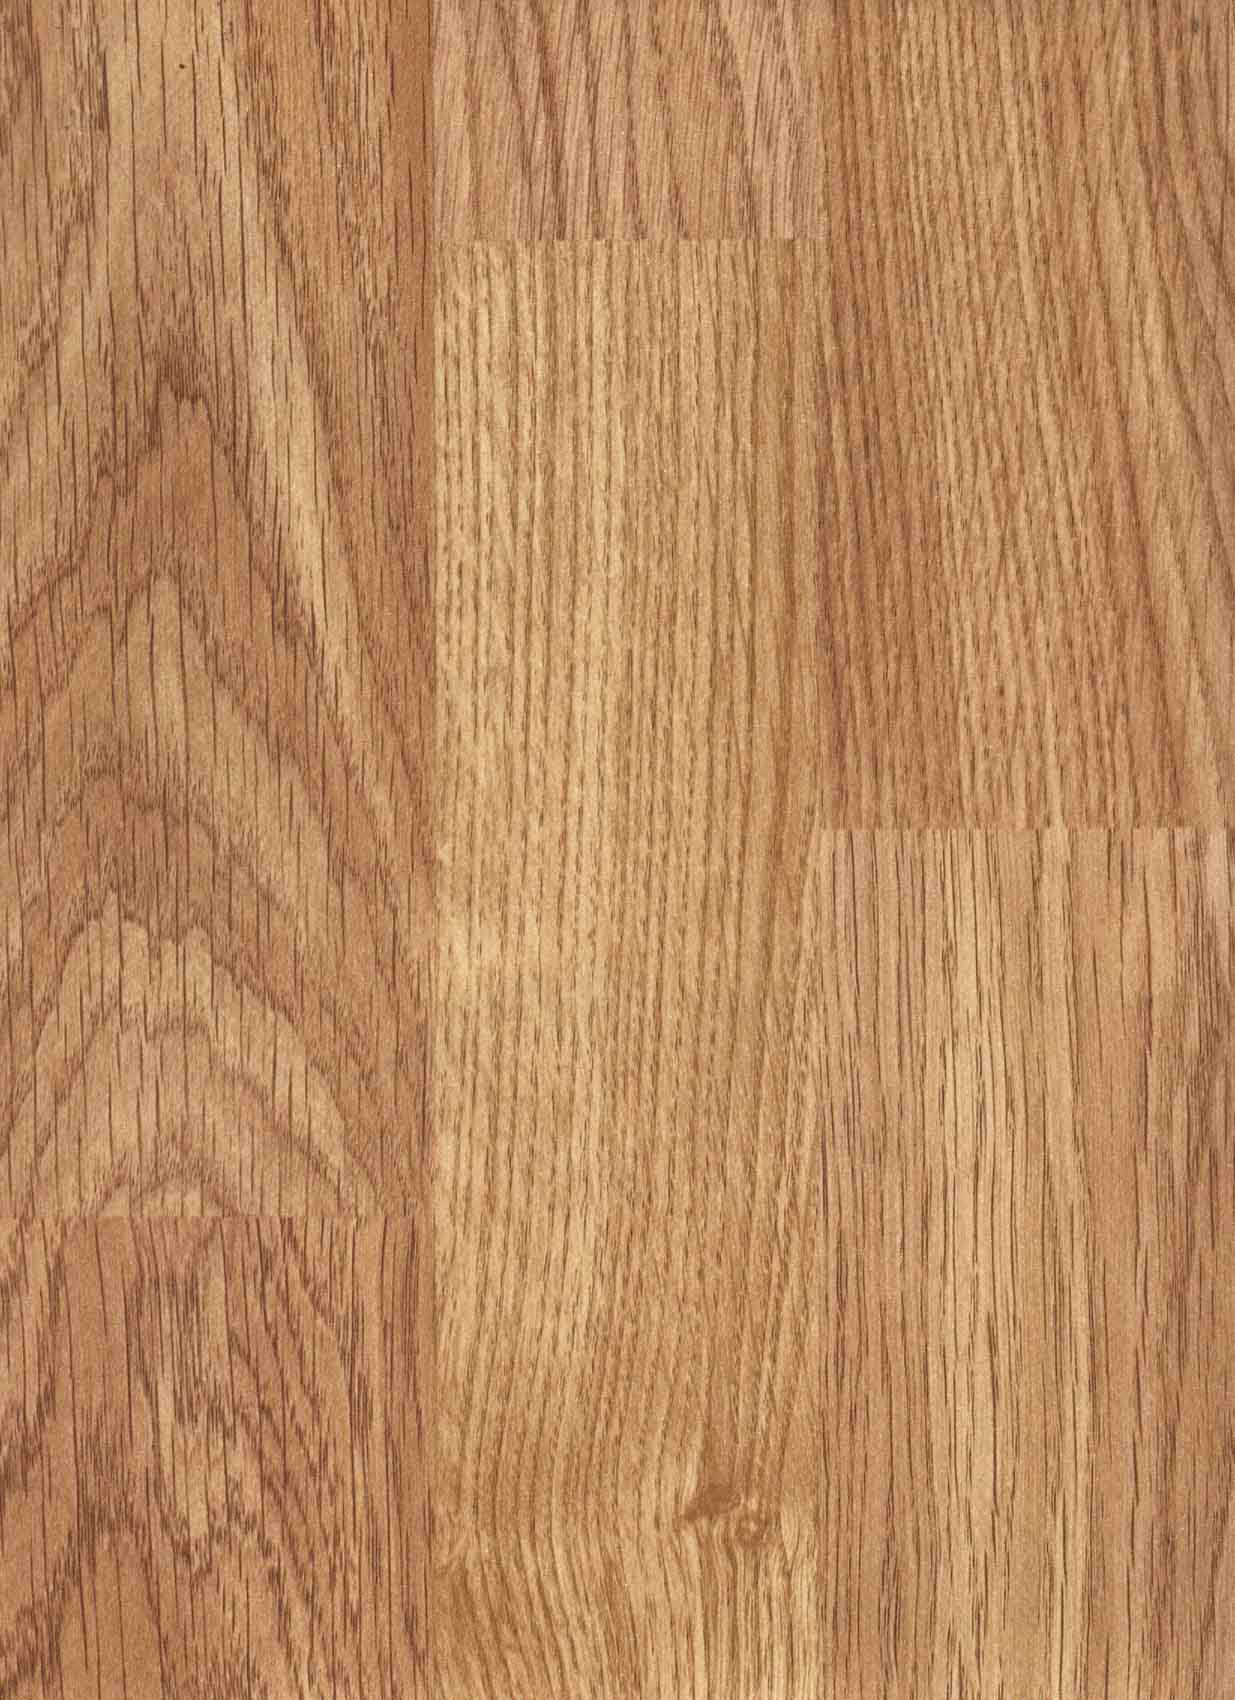 Laminate flooring laminate flooring laminated floor for Wood and laminate flooring